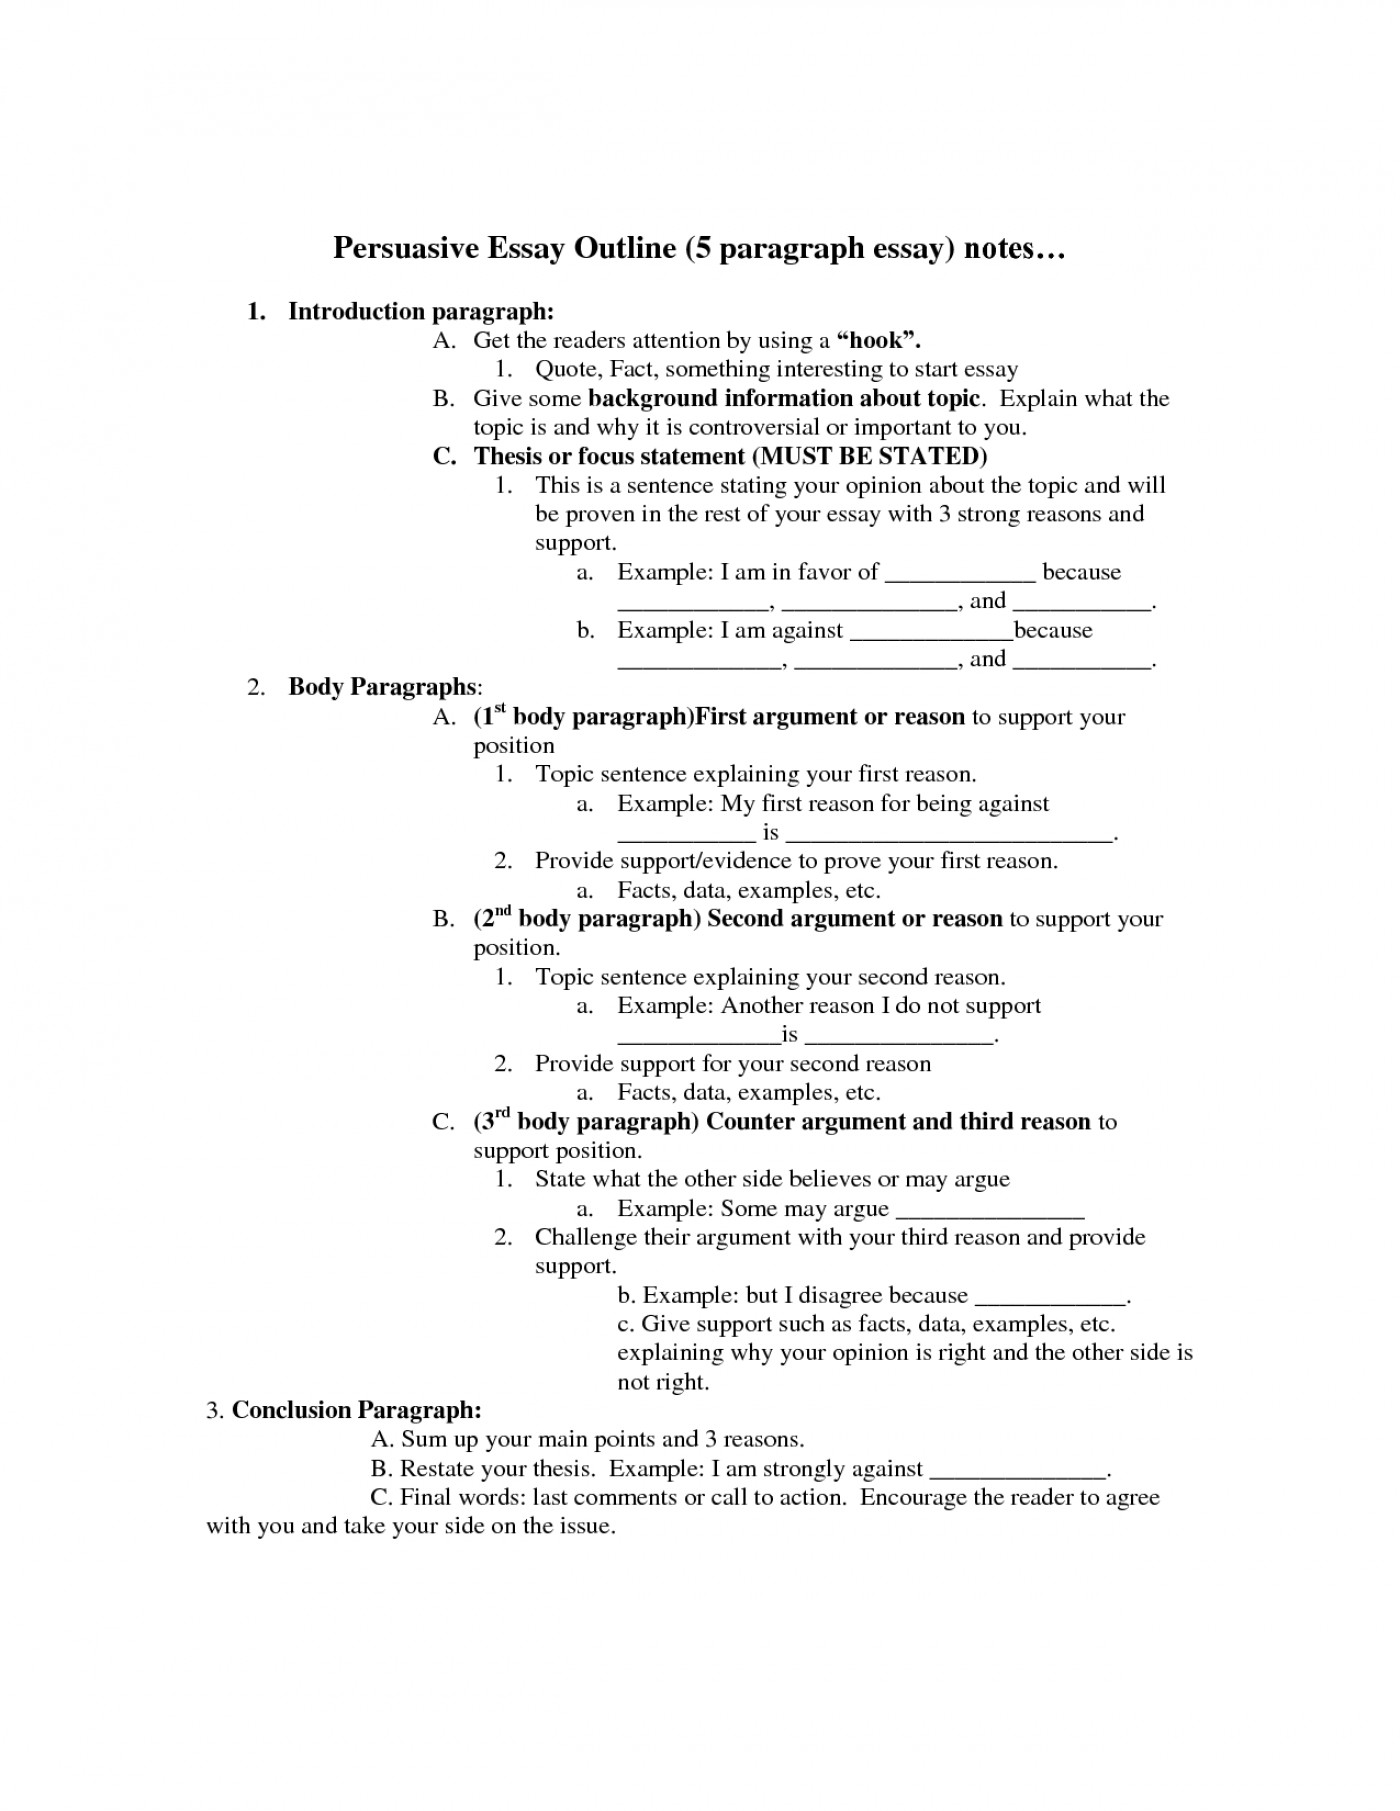 006 Persuasive Essay Outline Unbelievable Template Worksheet Pdf High School 1400